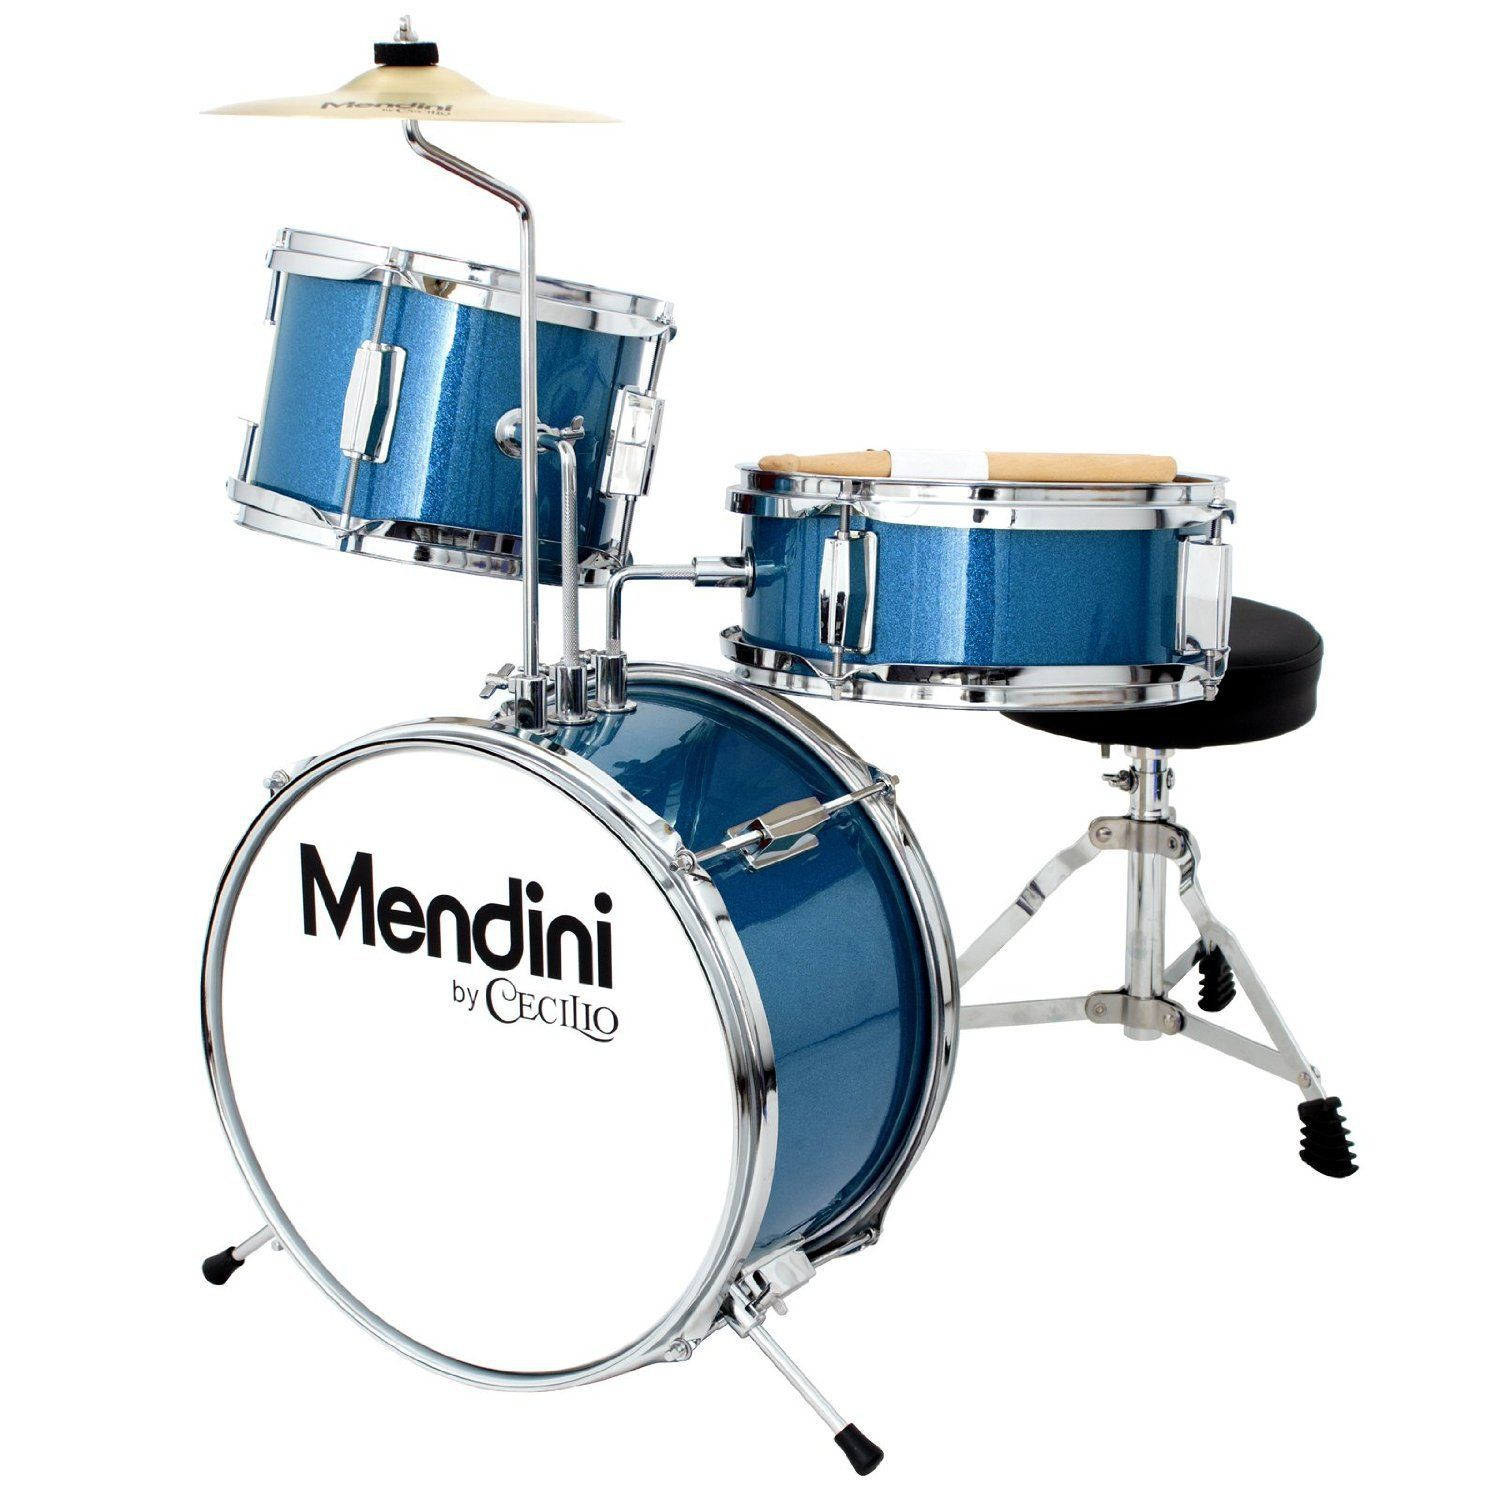 Cheap Drum Sets Under 100 Dollars 13 Product Reviews For 2019